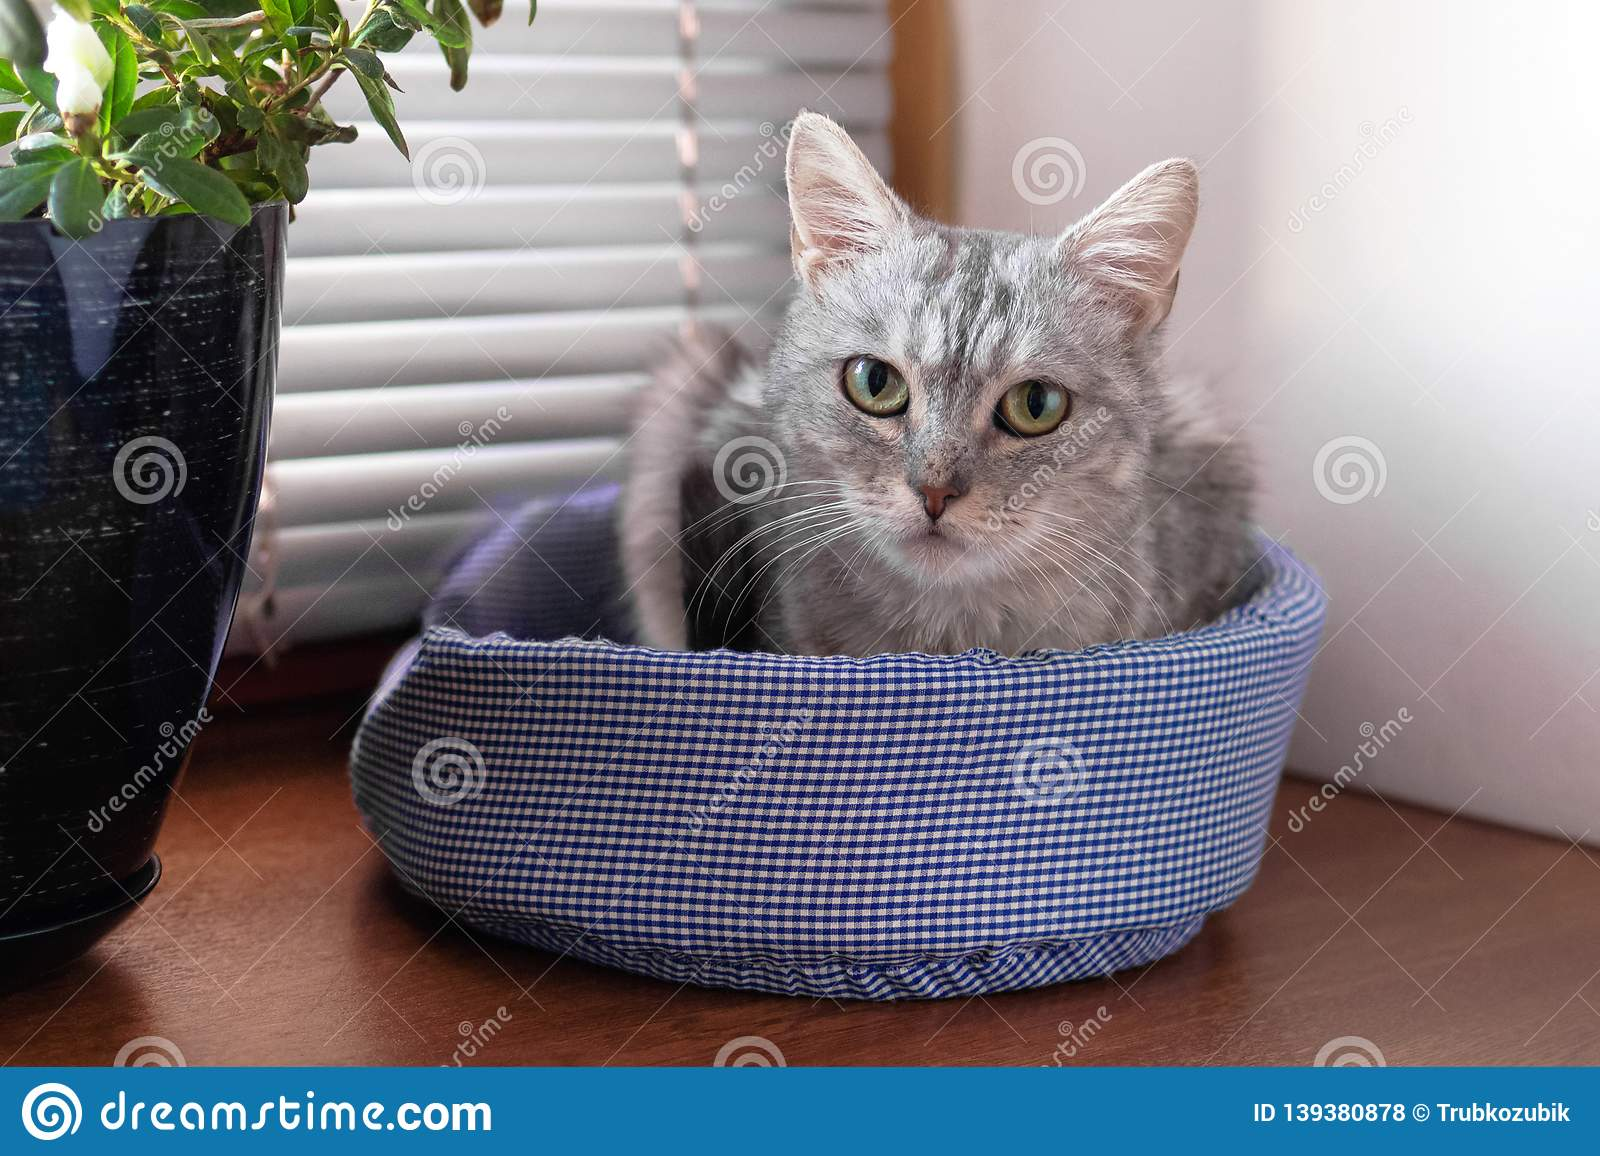 Beautiful gray tabby cat with green eyes is sitting on a cat bed near to a window and pot plant